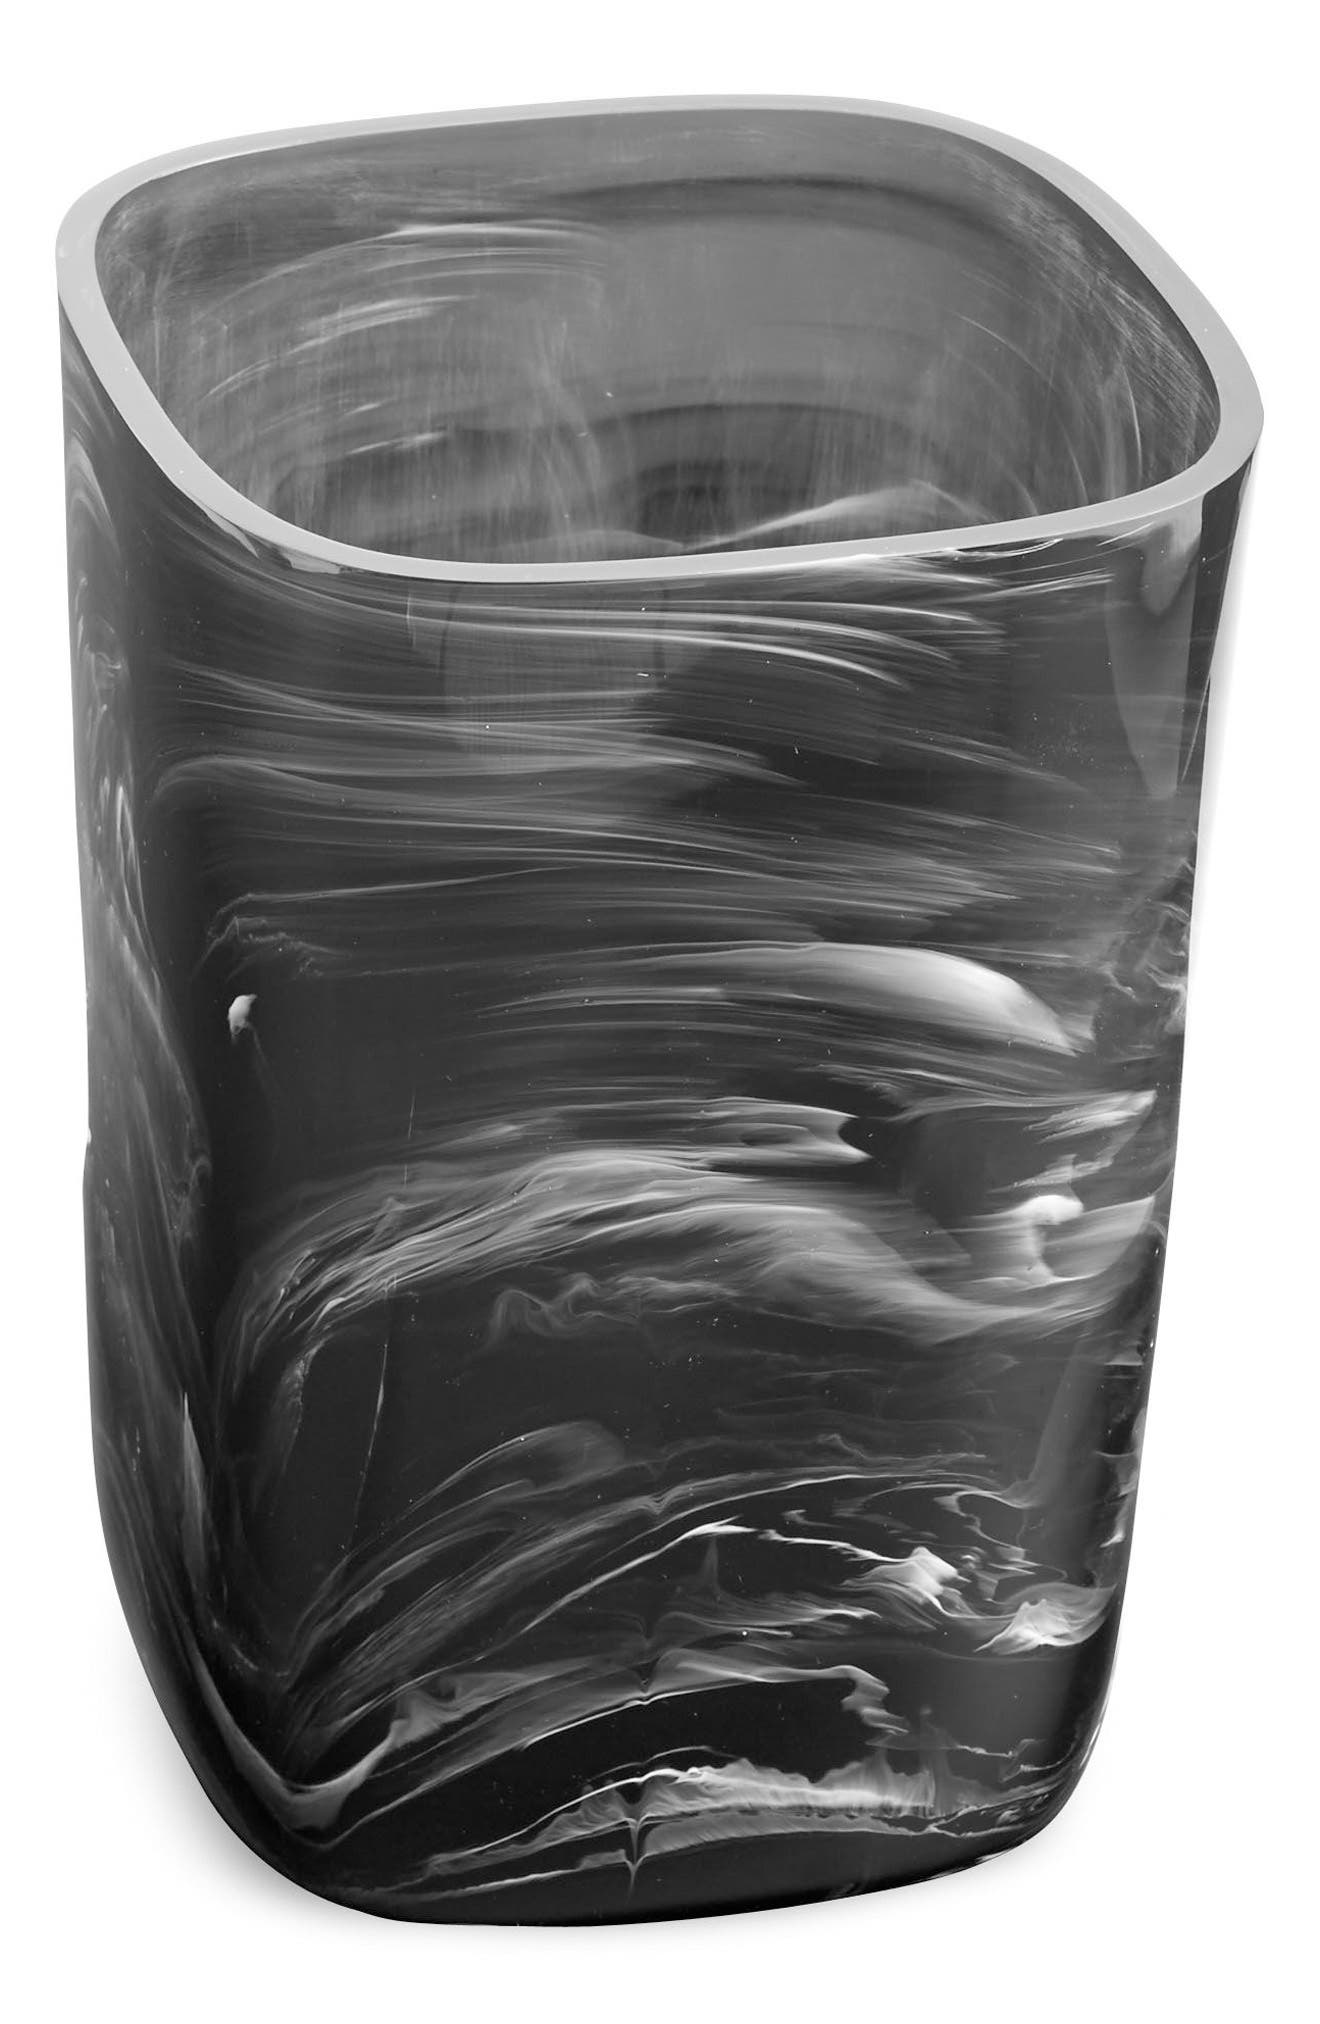 Murano Wastebasket,                         Main,                         color,